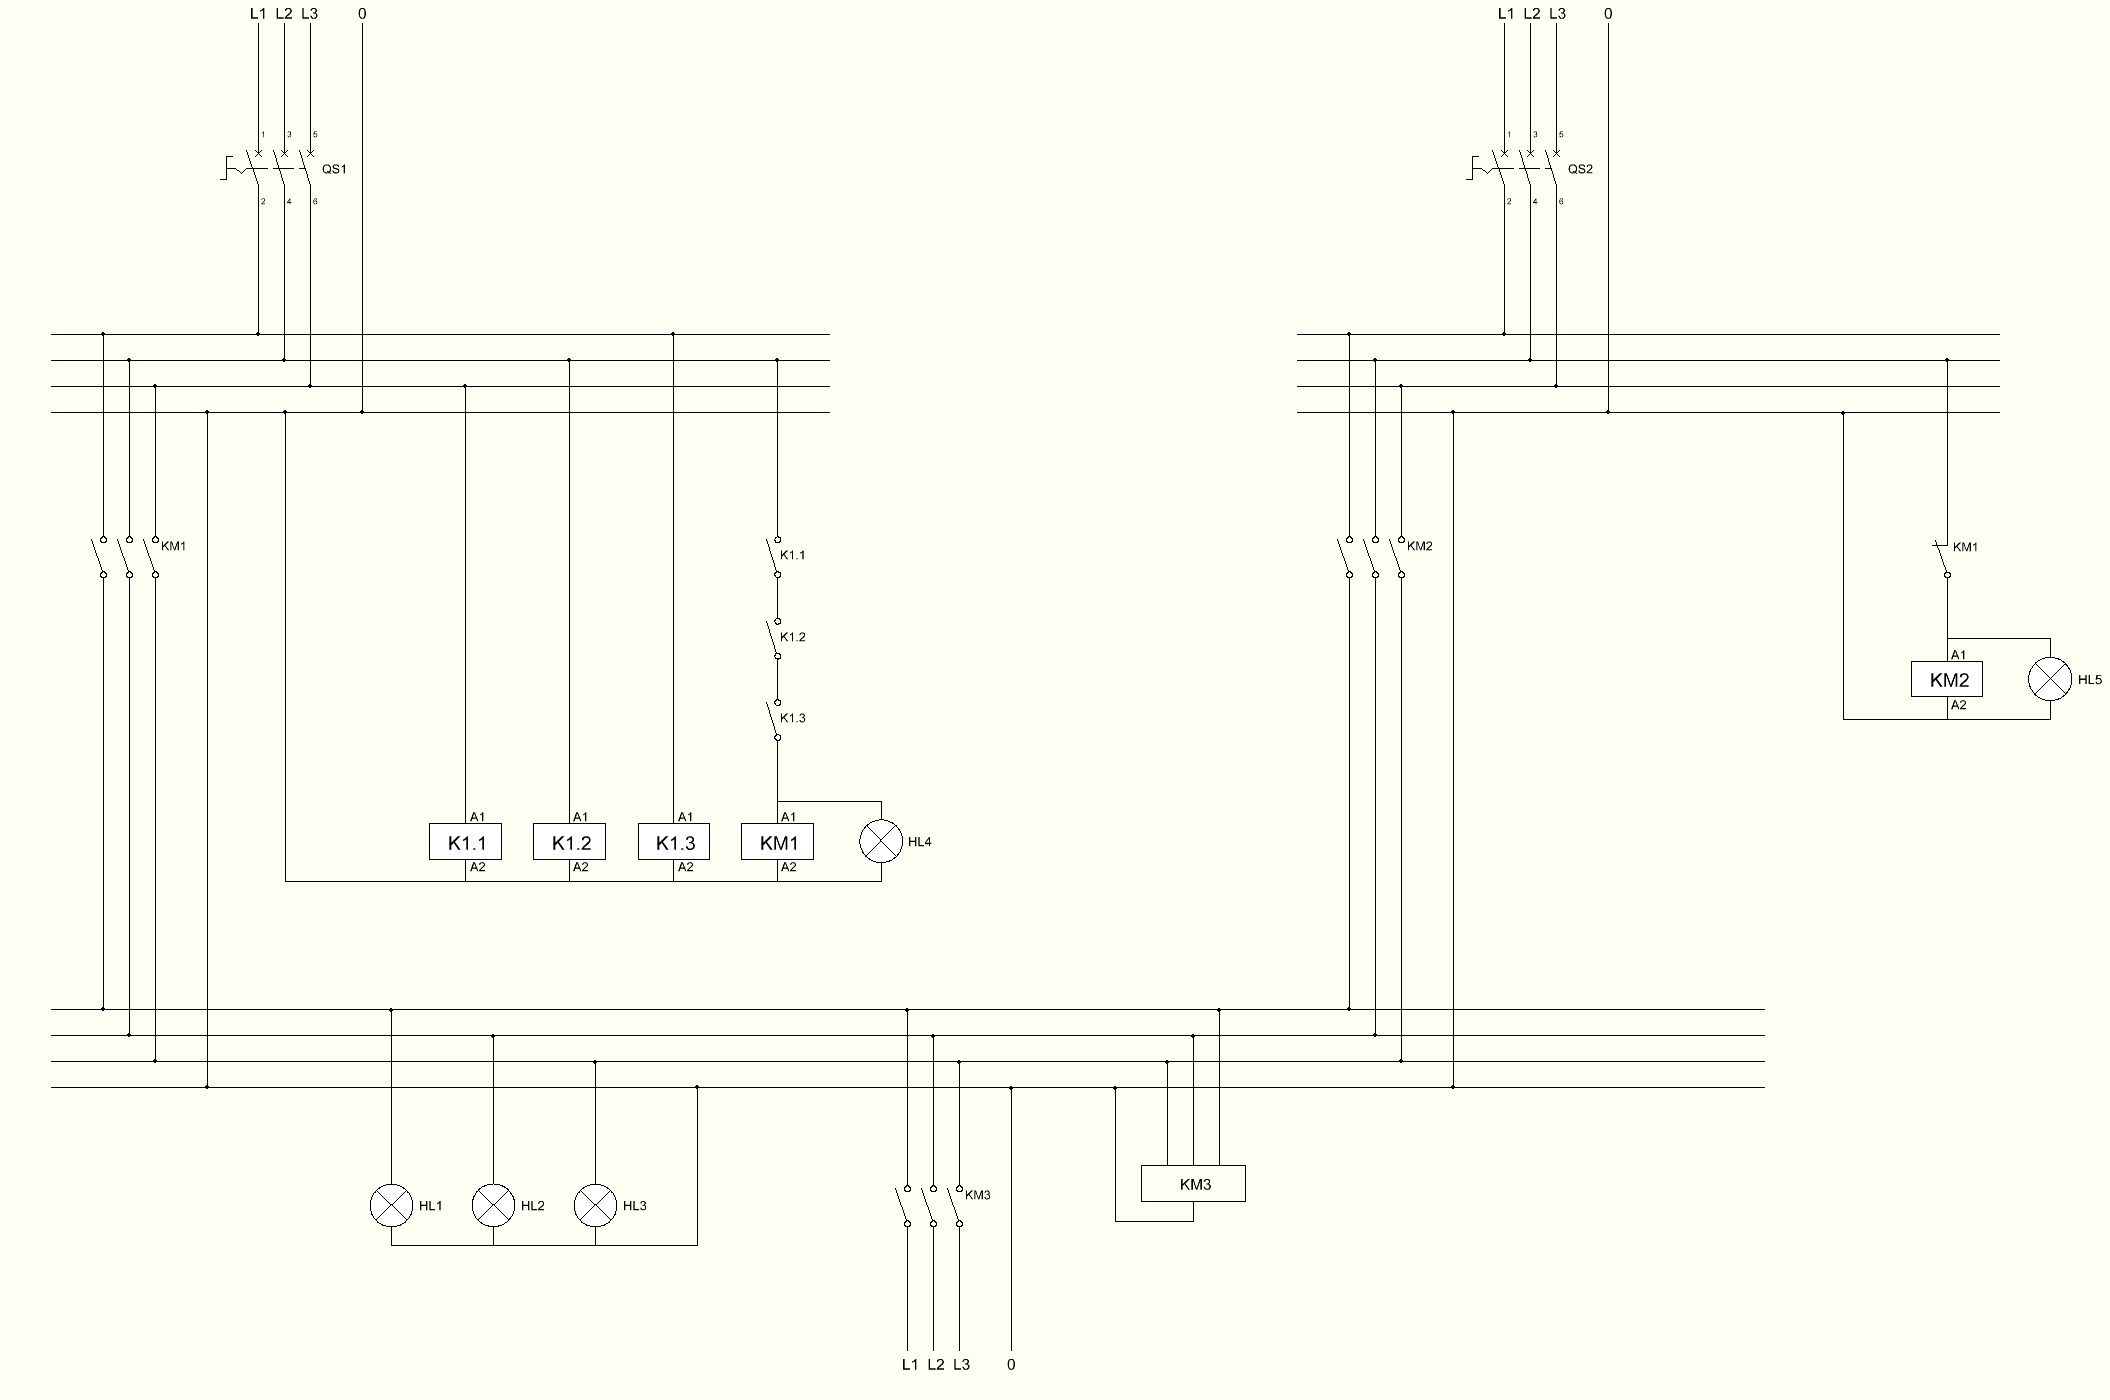 Filewiring diagram of automatic transfer switch for dummiesg filewiring diagram of automatic transfer switch for dummiesg swarovskicordoba Choice Image